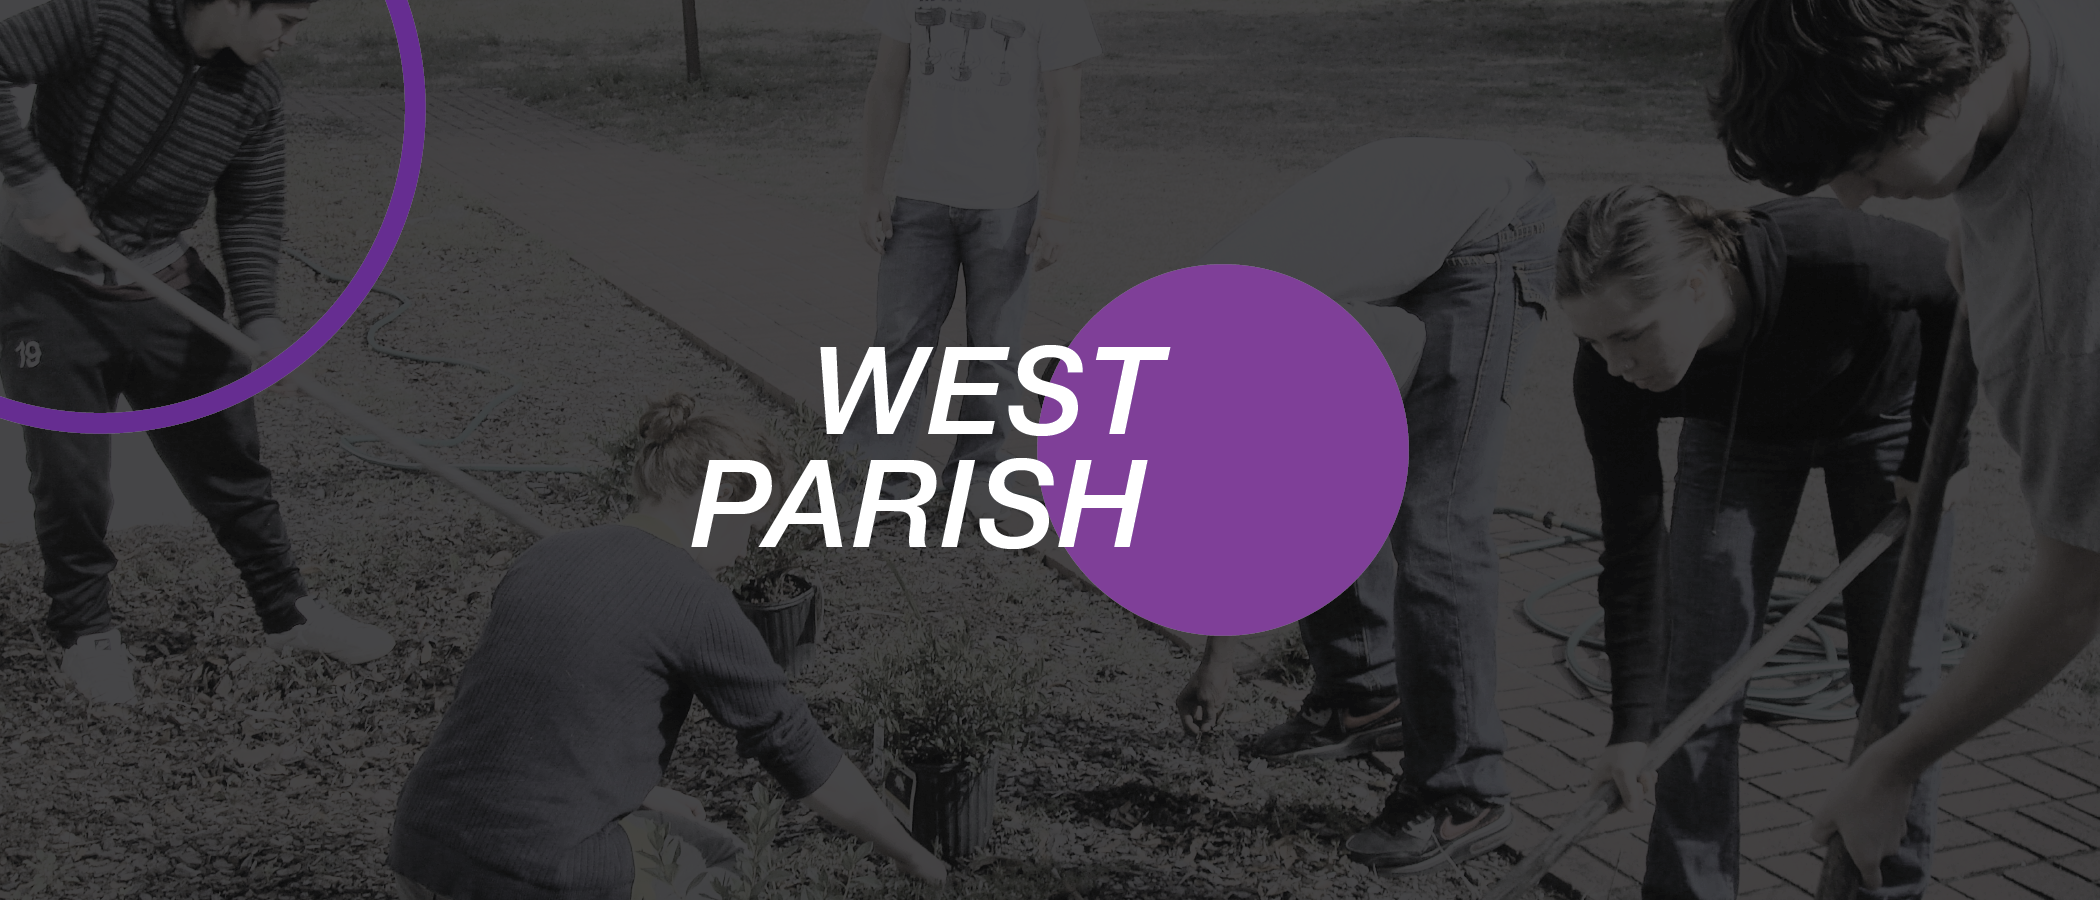 westparish-01.png